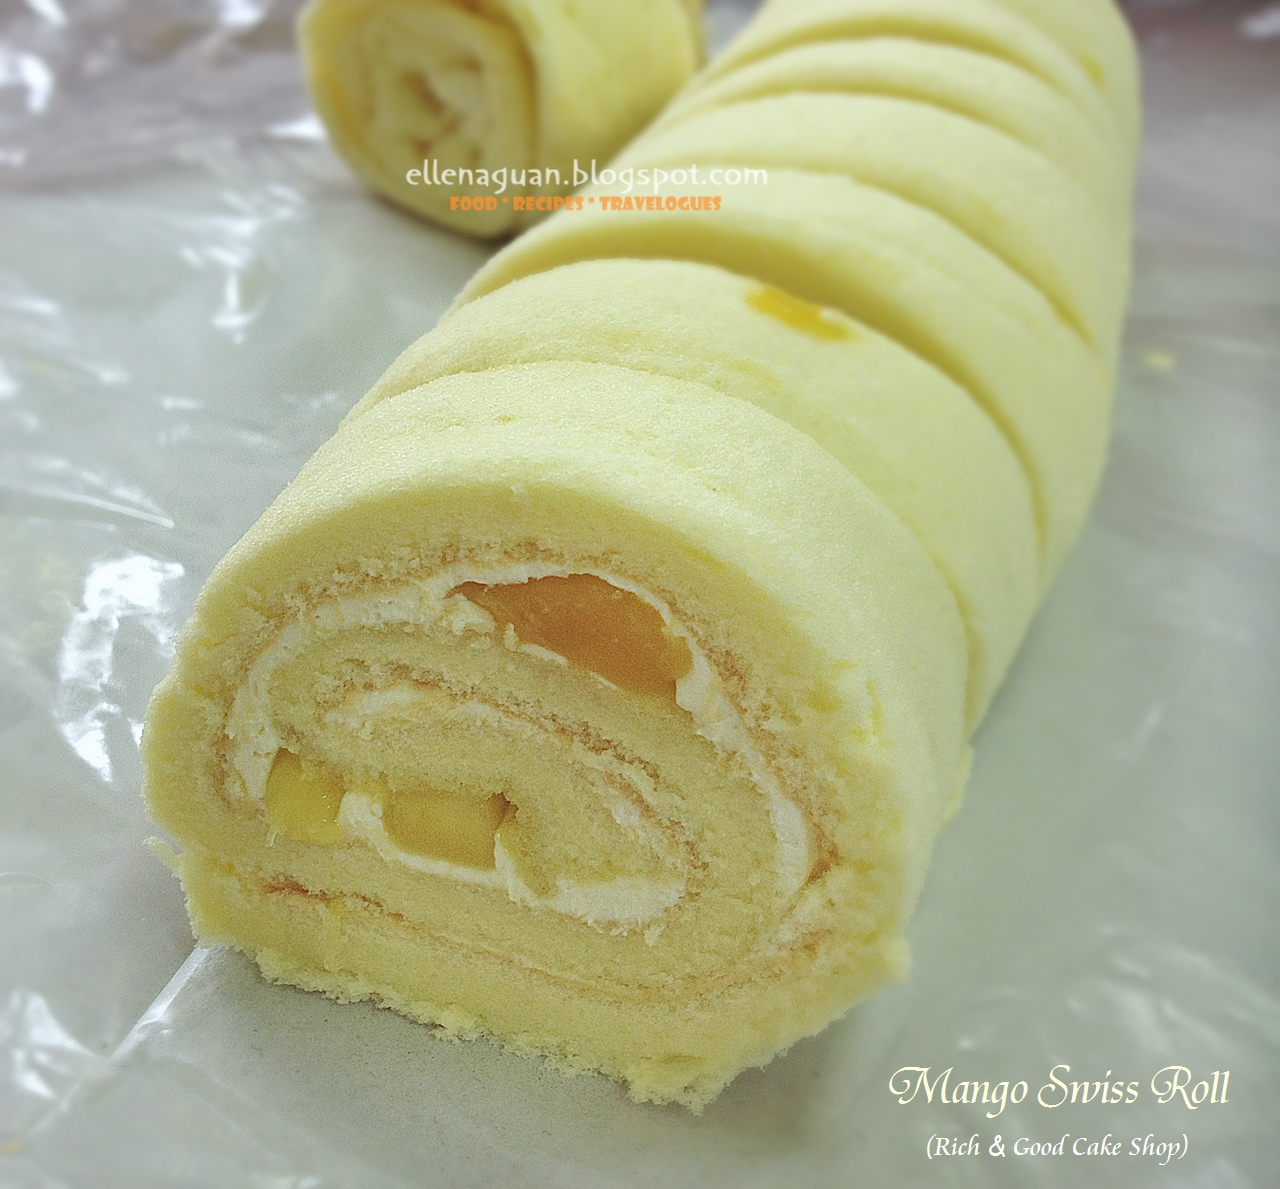 Alternatively You Could Try Their Mango Swiss Roll Which Was Not As Sweet As Compared To The Kaya Swiss Roll Which I Think Is Good For Those Who Dont Have